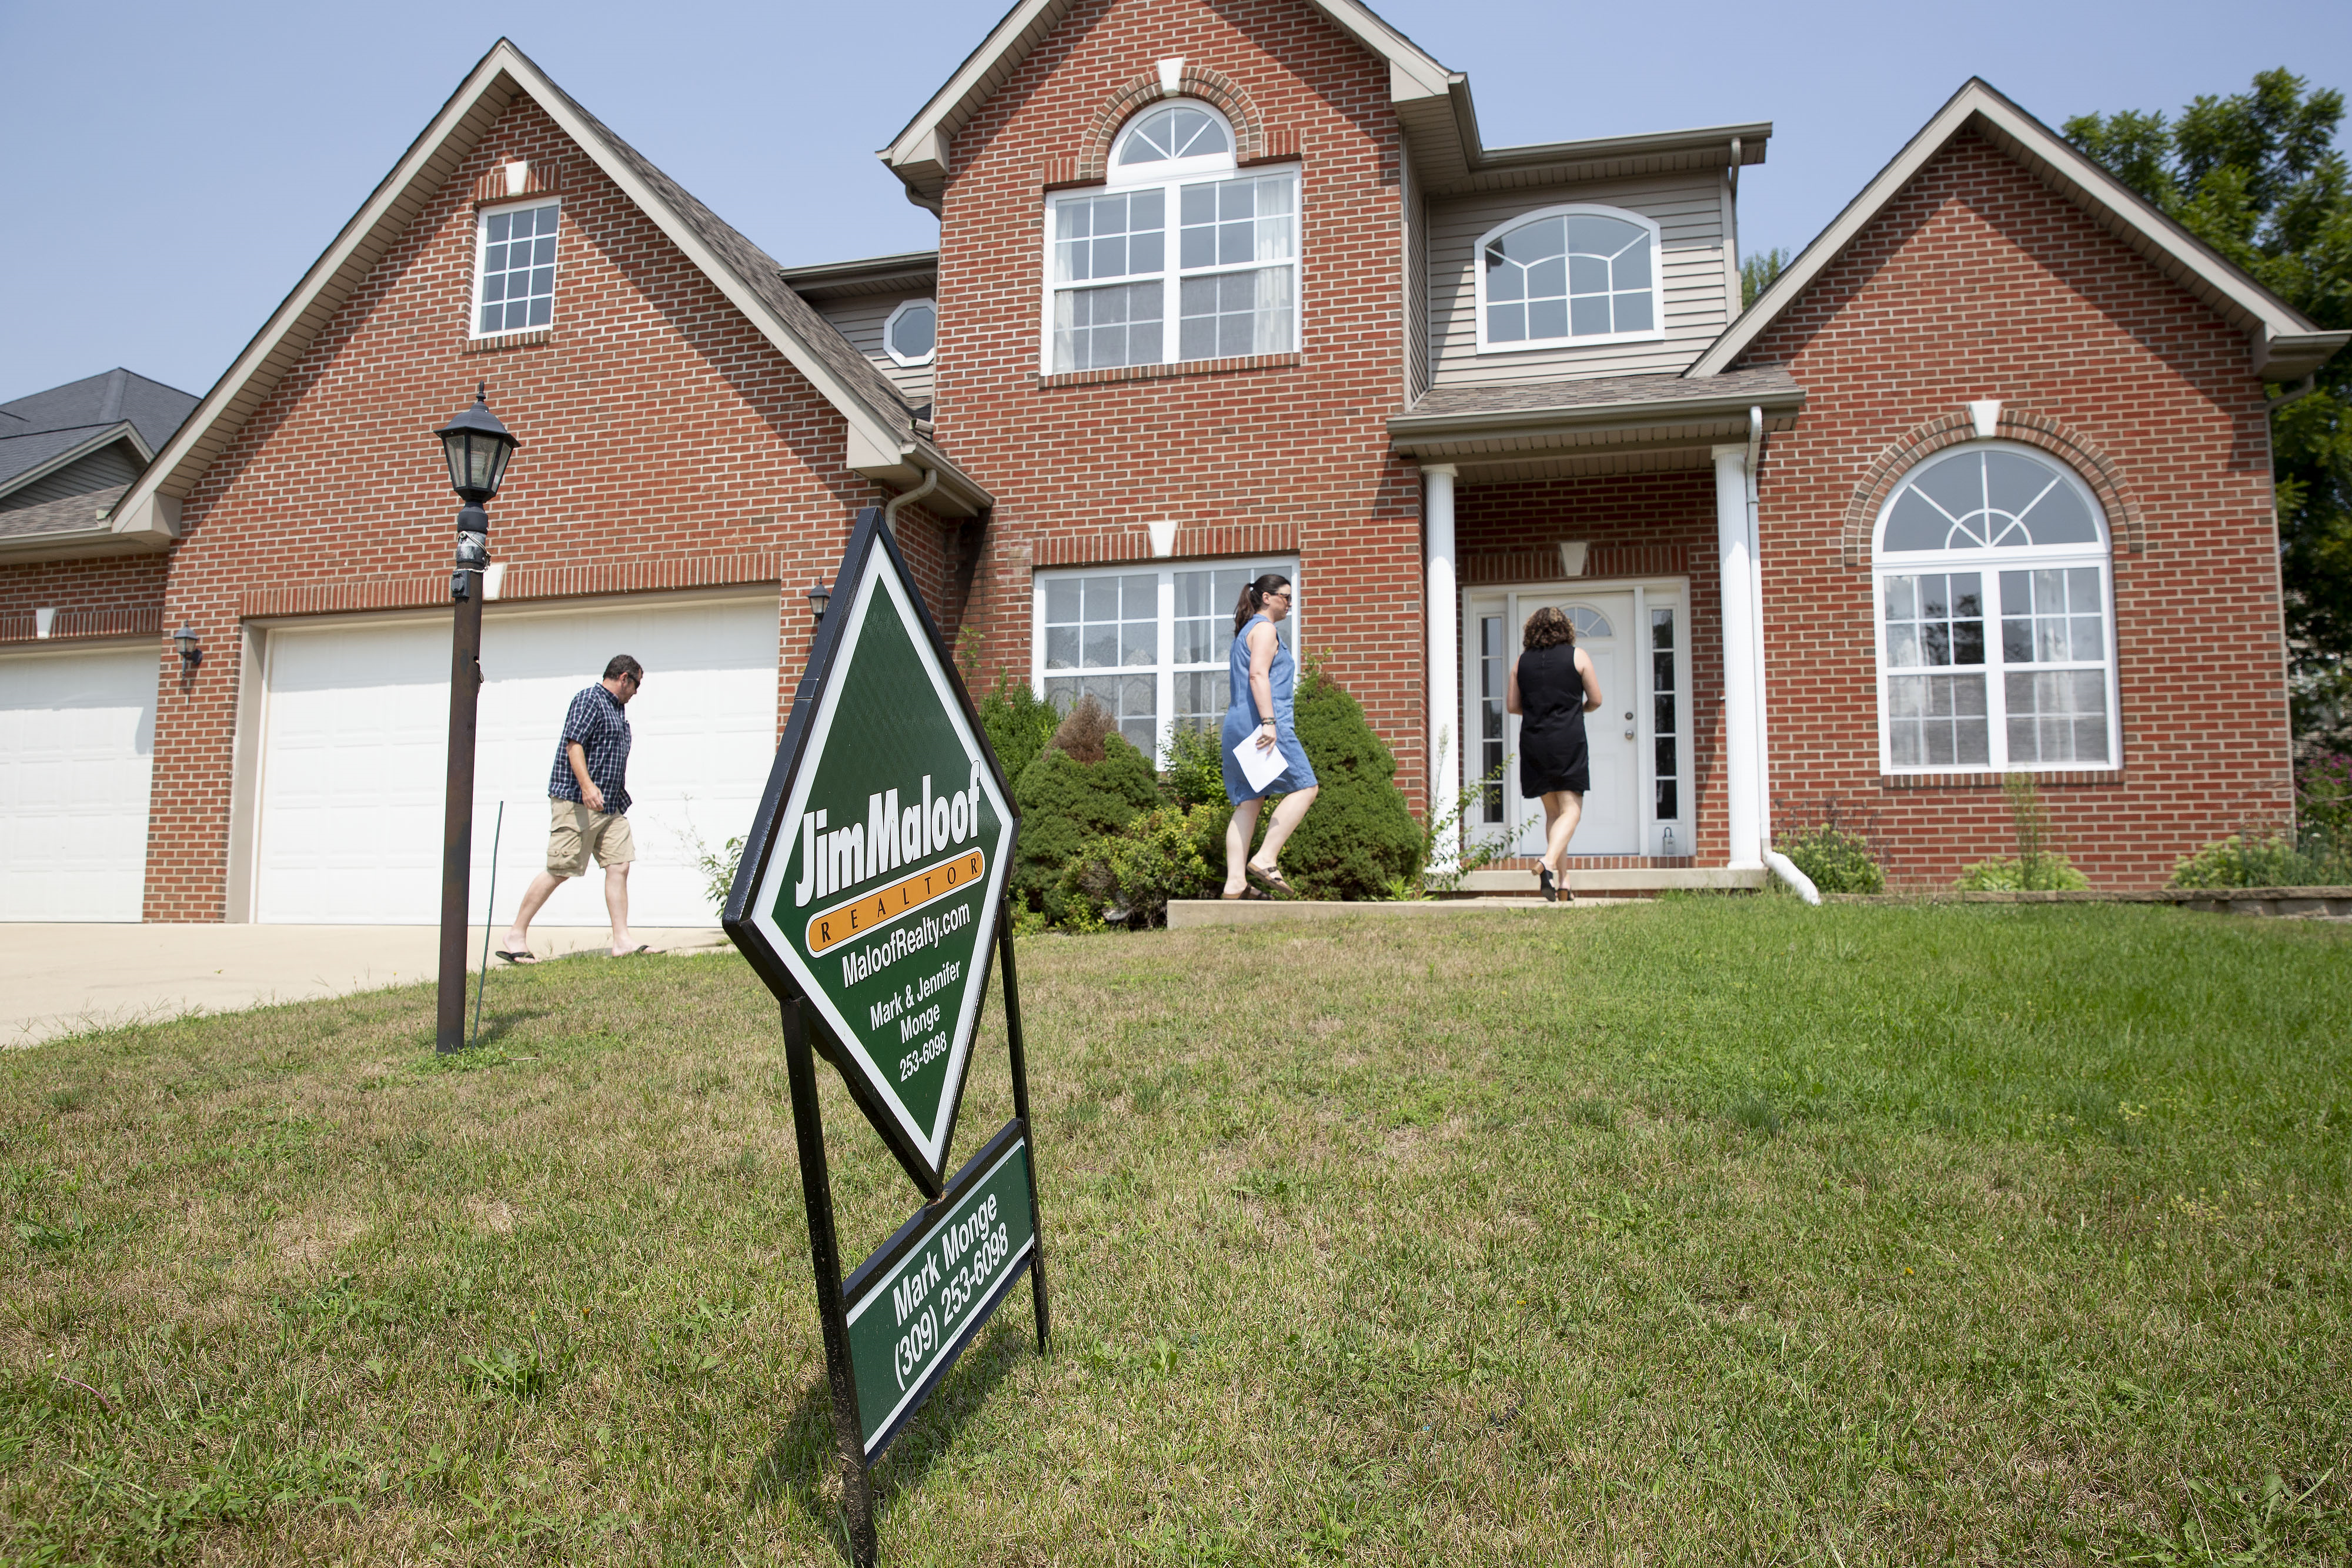 d03e3c9364faa4 bloomberg-house-sign-sale.png